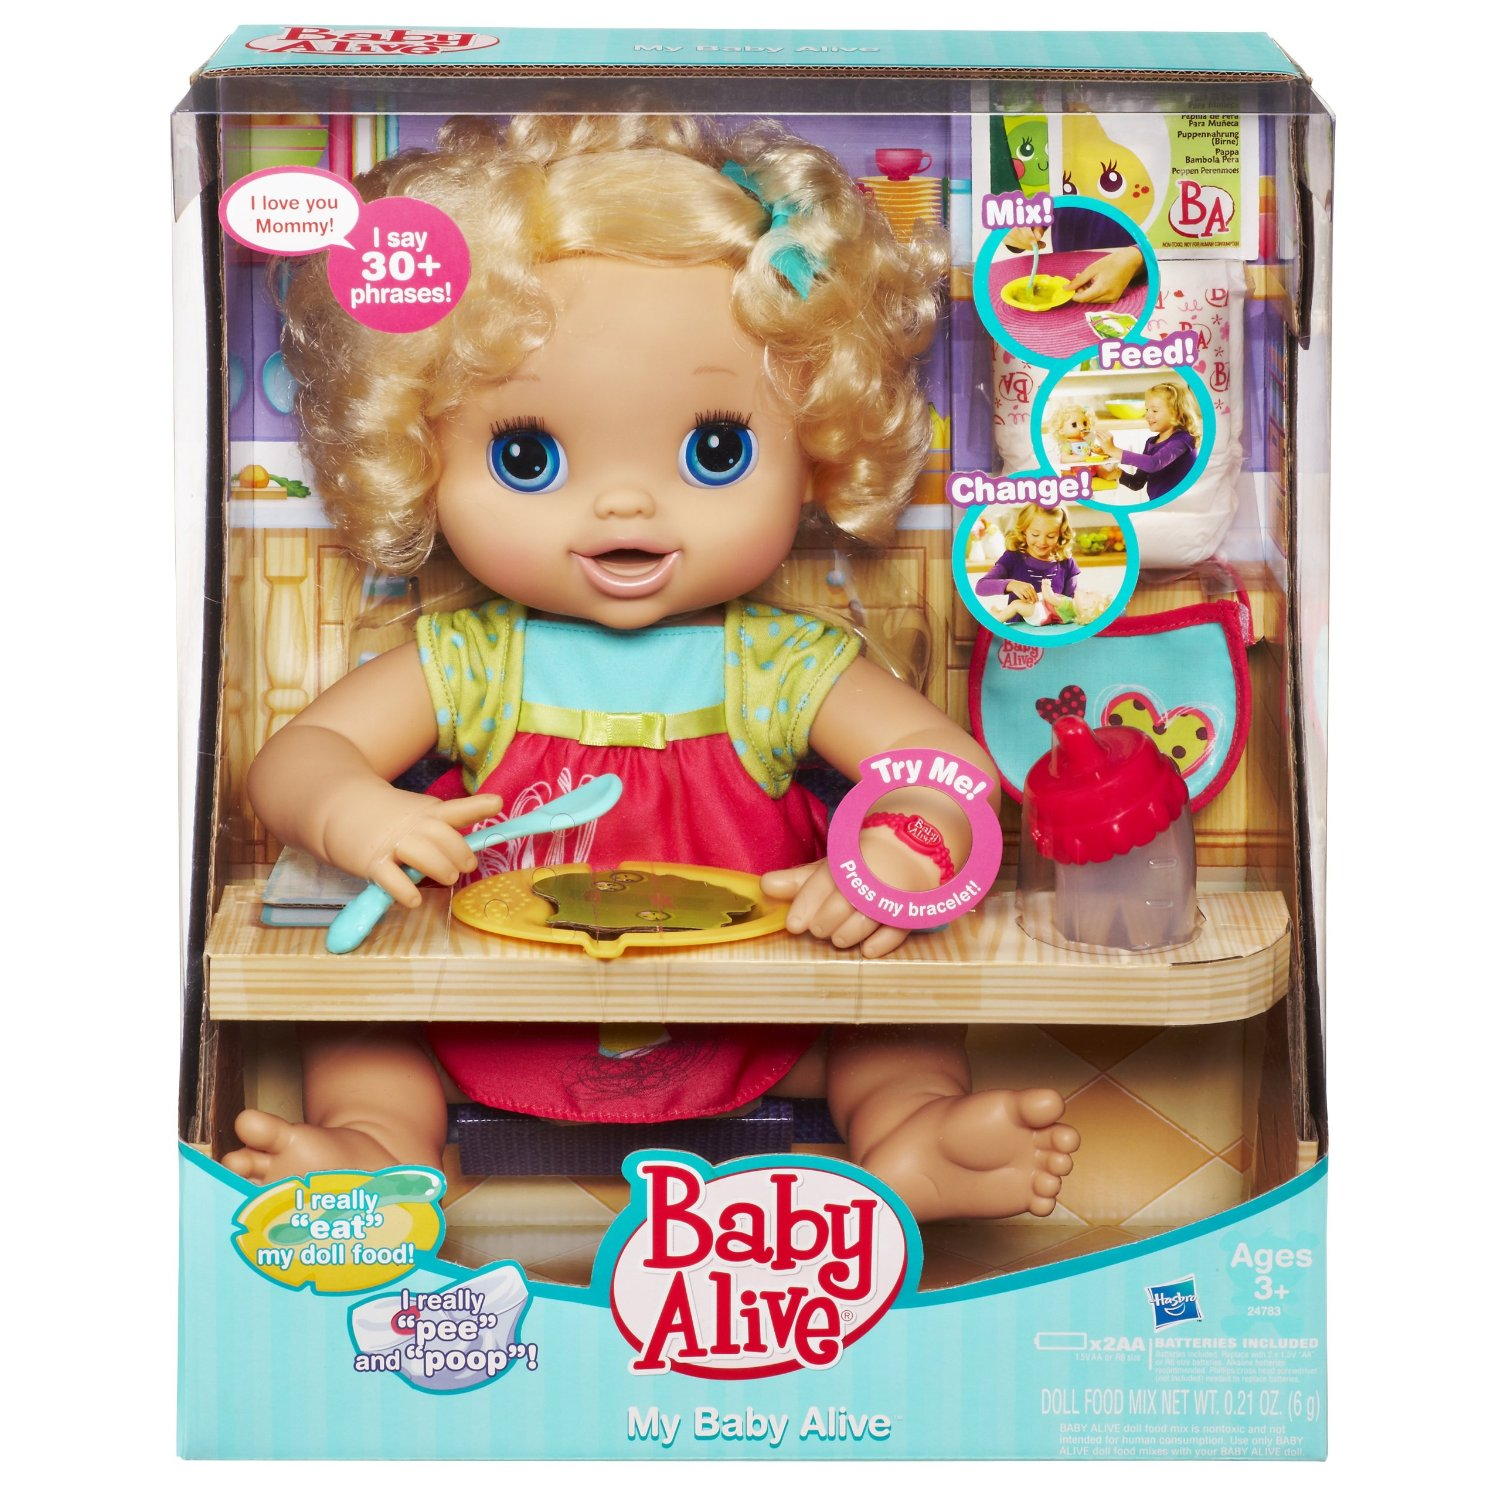 This Doll Eats, Pees, & Poops- A My Baby Alive Blonde Doll